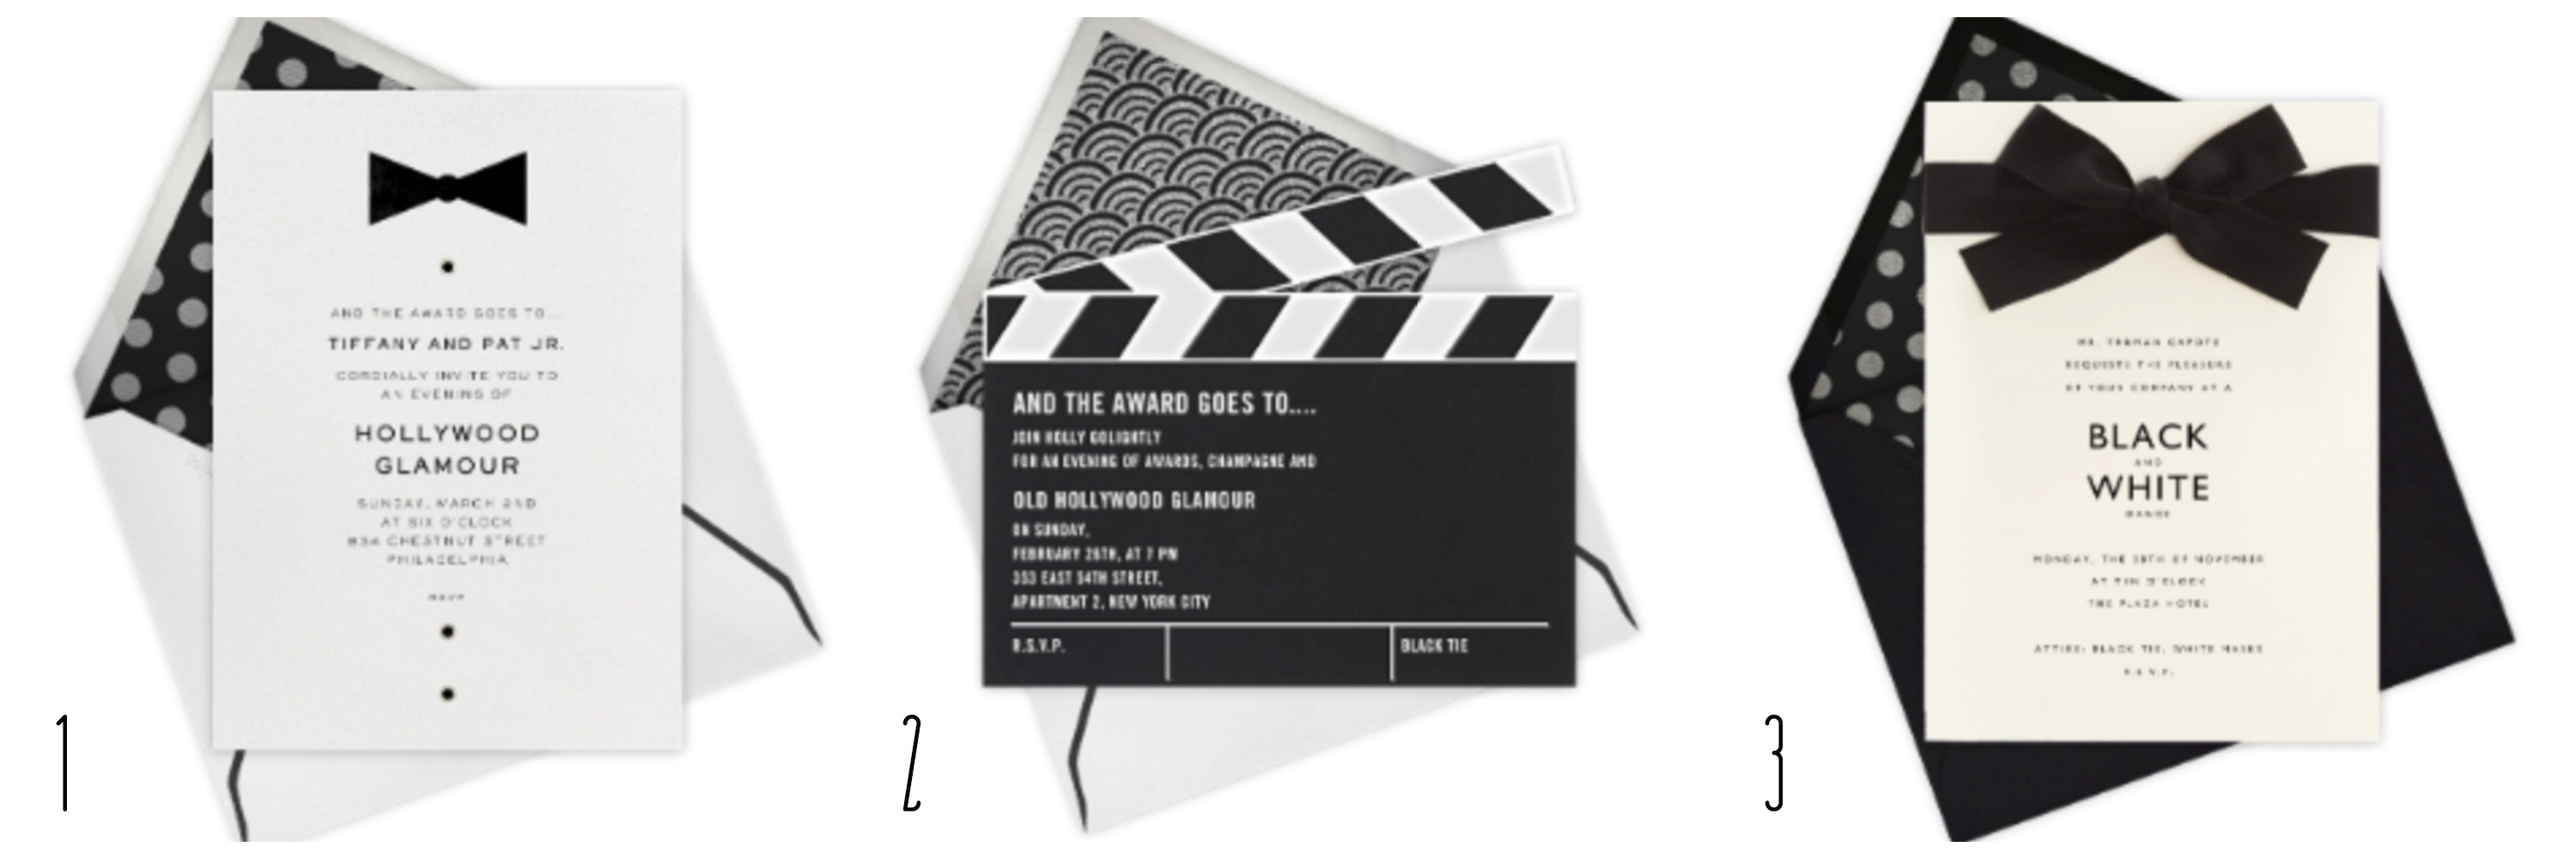 Black And White Party Invitations gangcraftnet